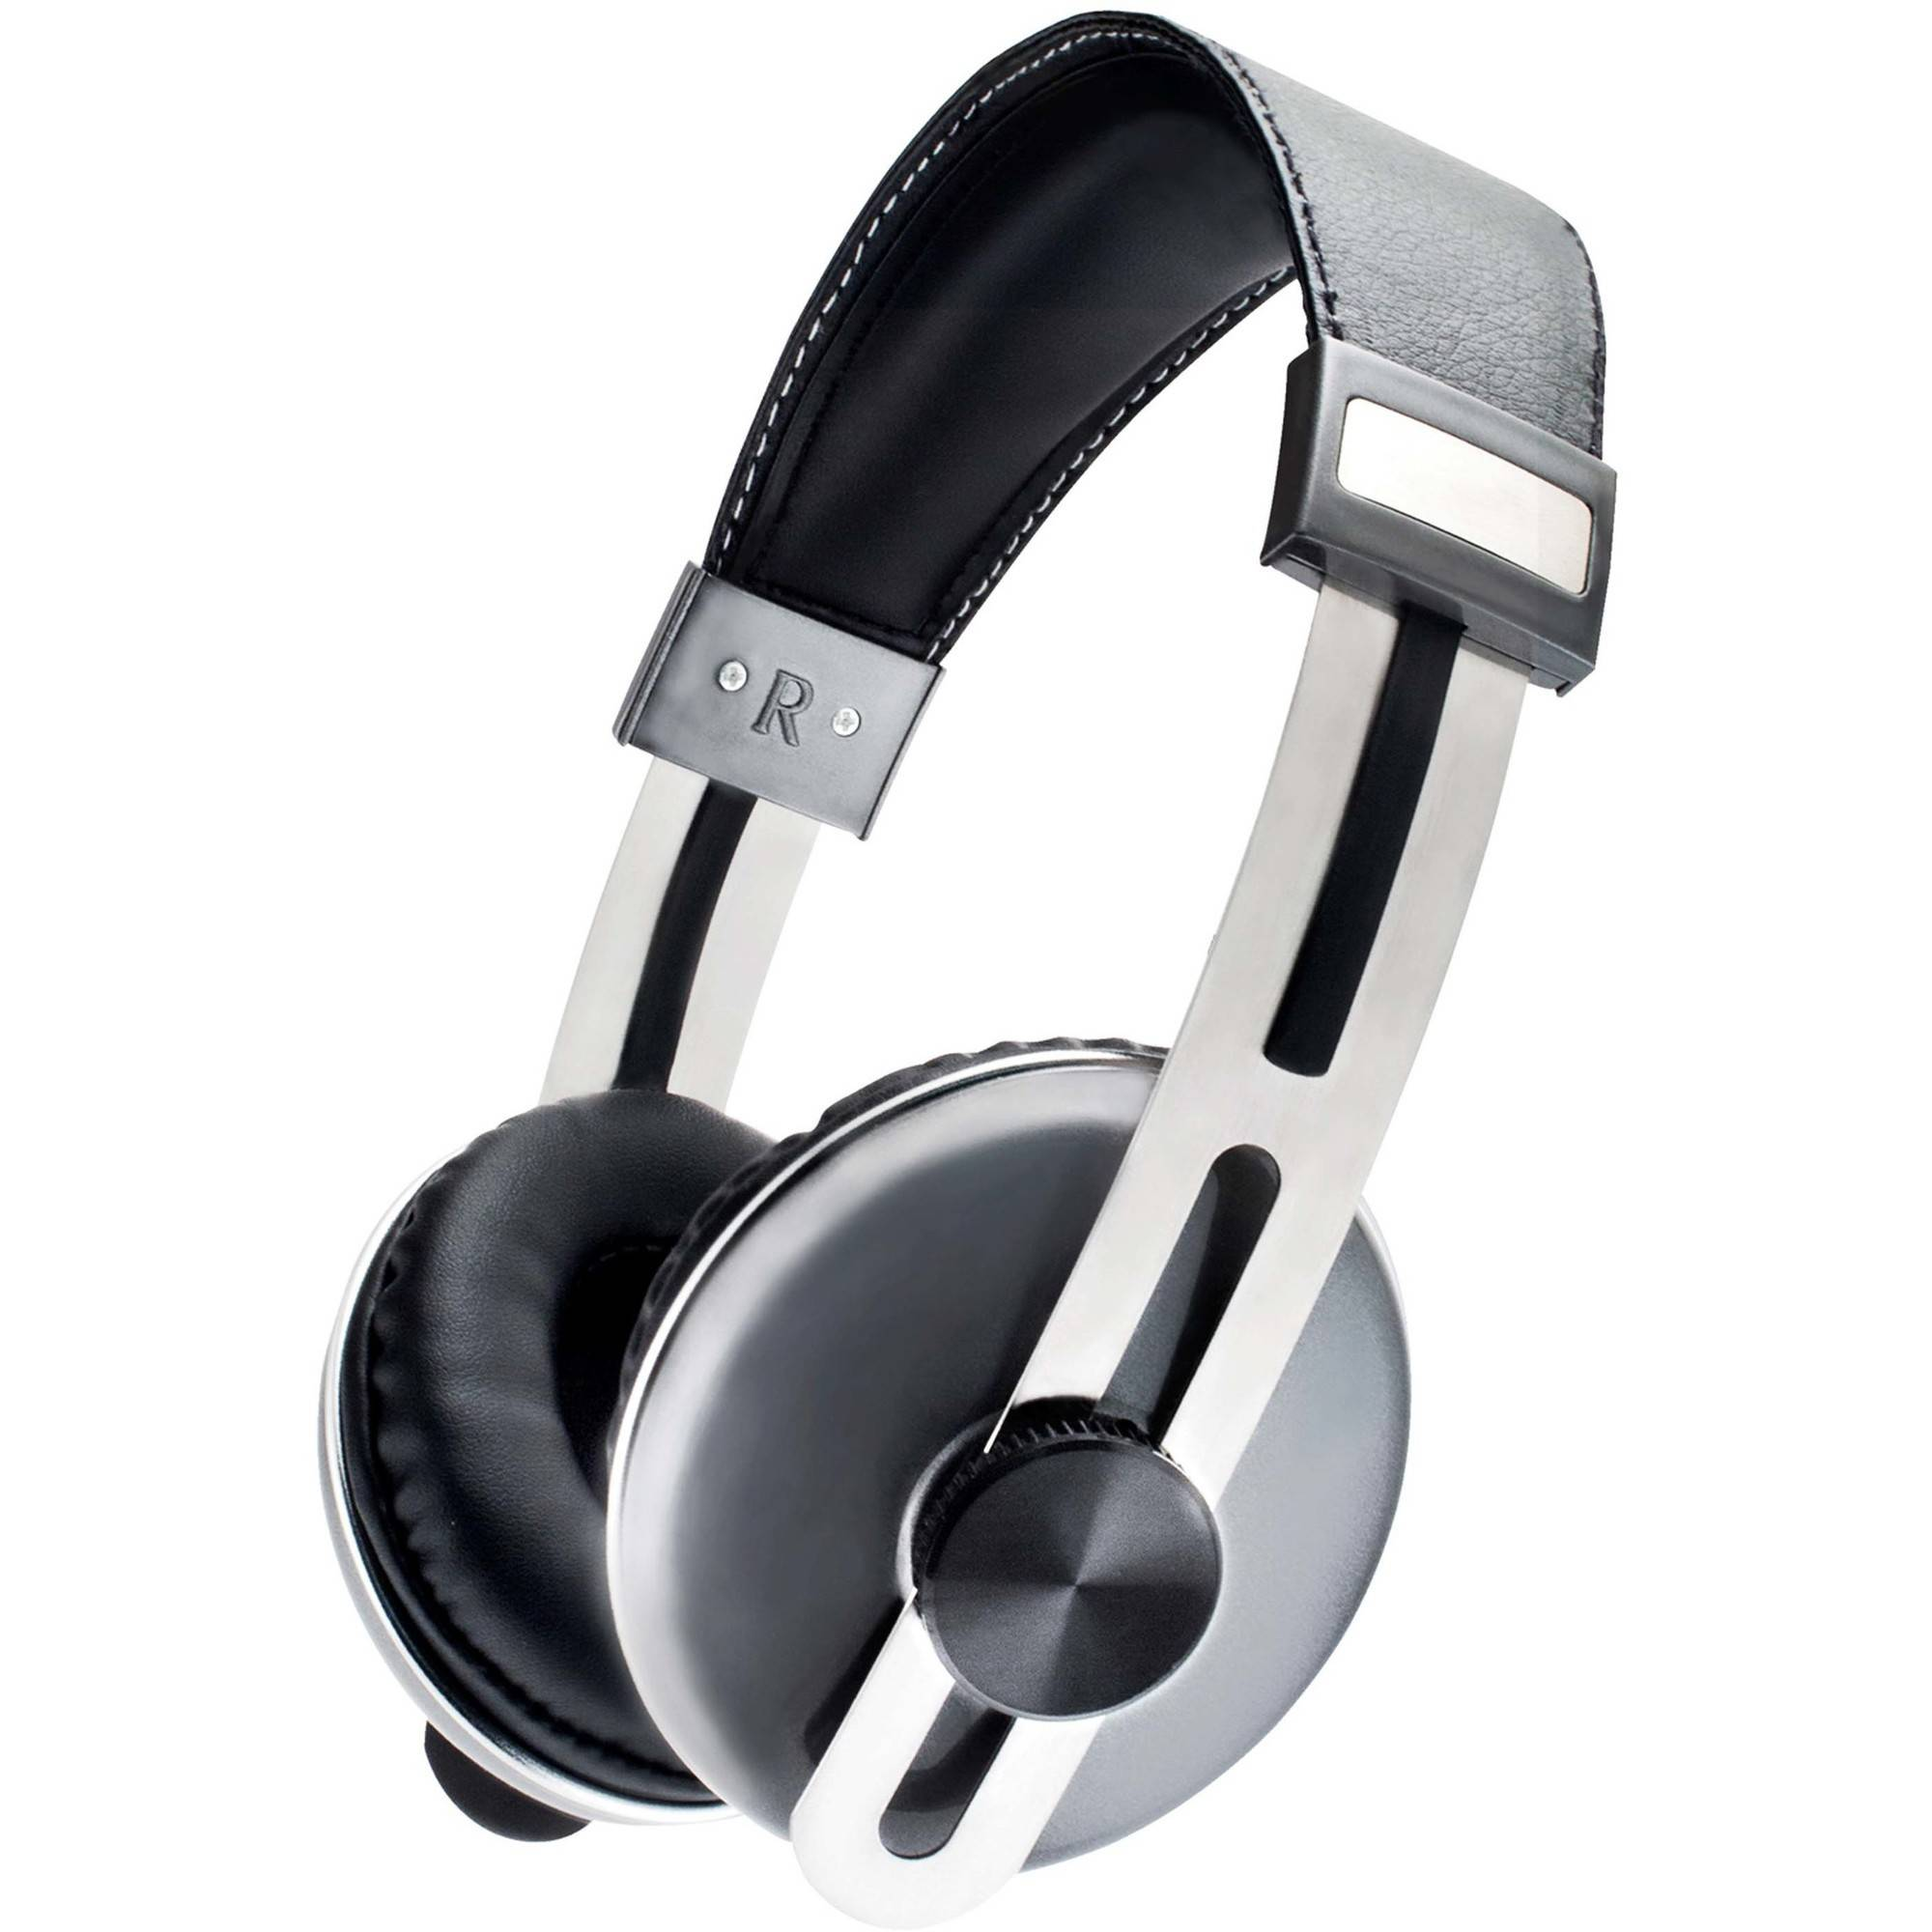 Sentry HM600 Pulse Pro-Series Stereo Headphones with Mic, Black/Grey